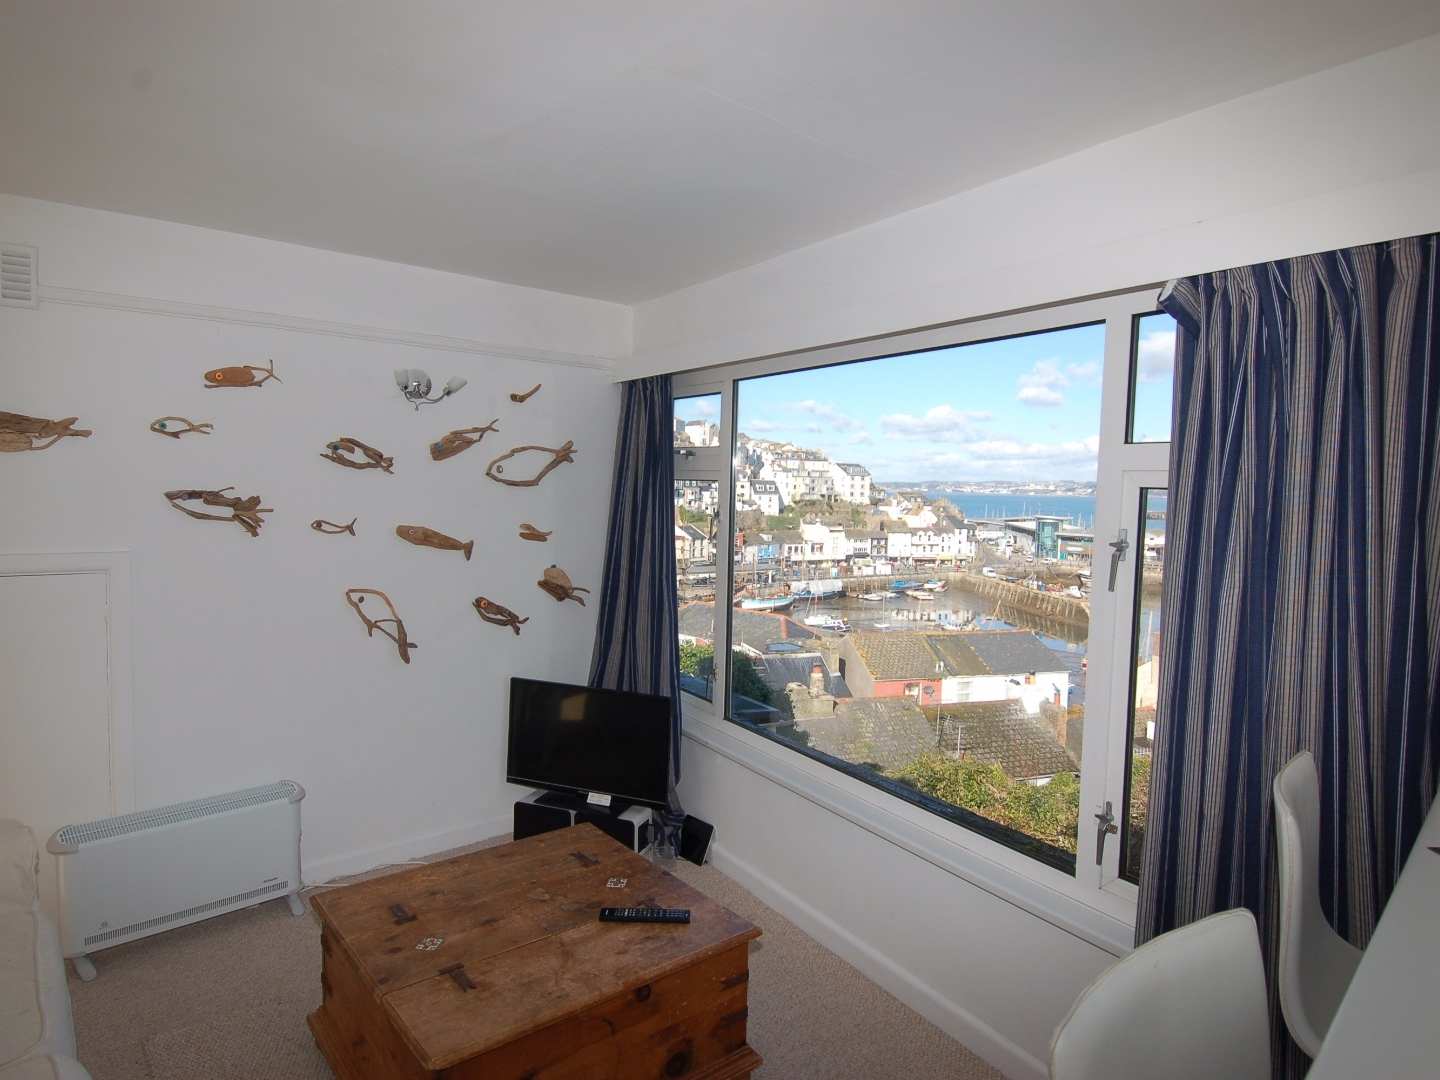 Harbour View Retreat Image 2